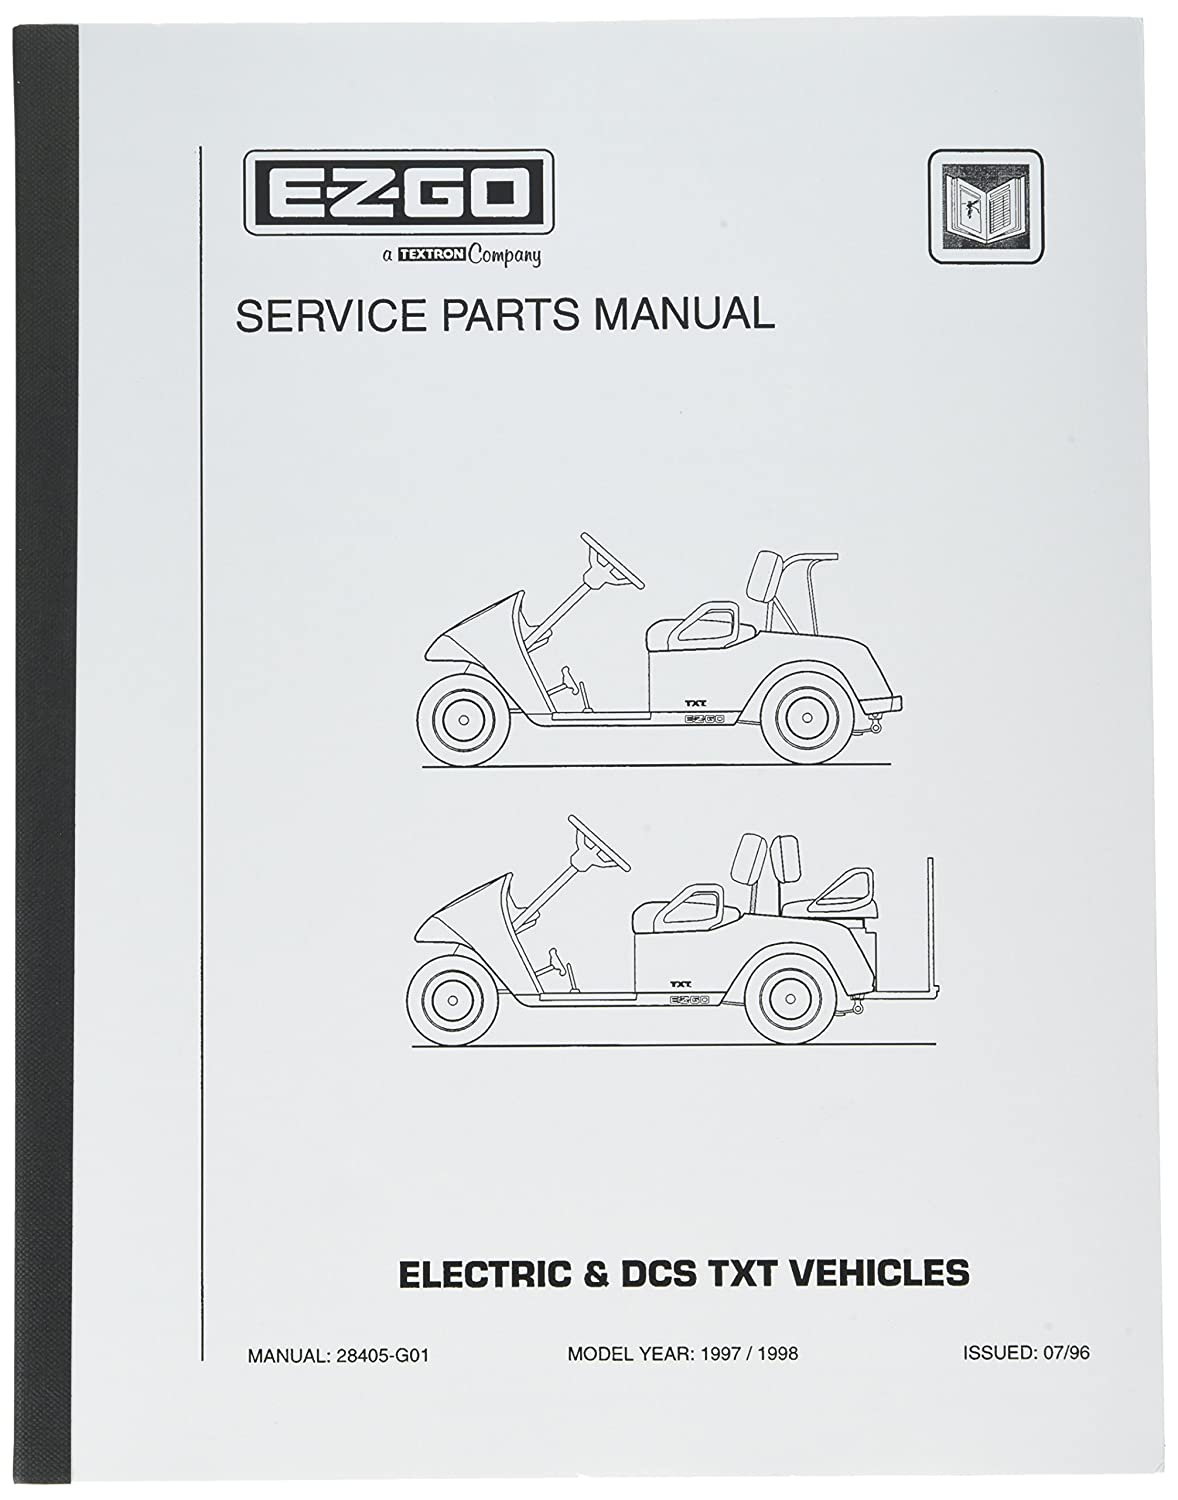 Amazon.com : EZGO 28405G01 1997-1998 Service Parts Manual for Electric and  DCS TXT Golf Cars : Outdoor Decorative Fences : Garden & Outdoor